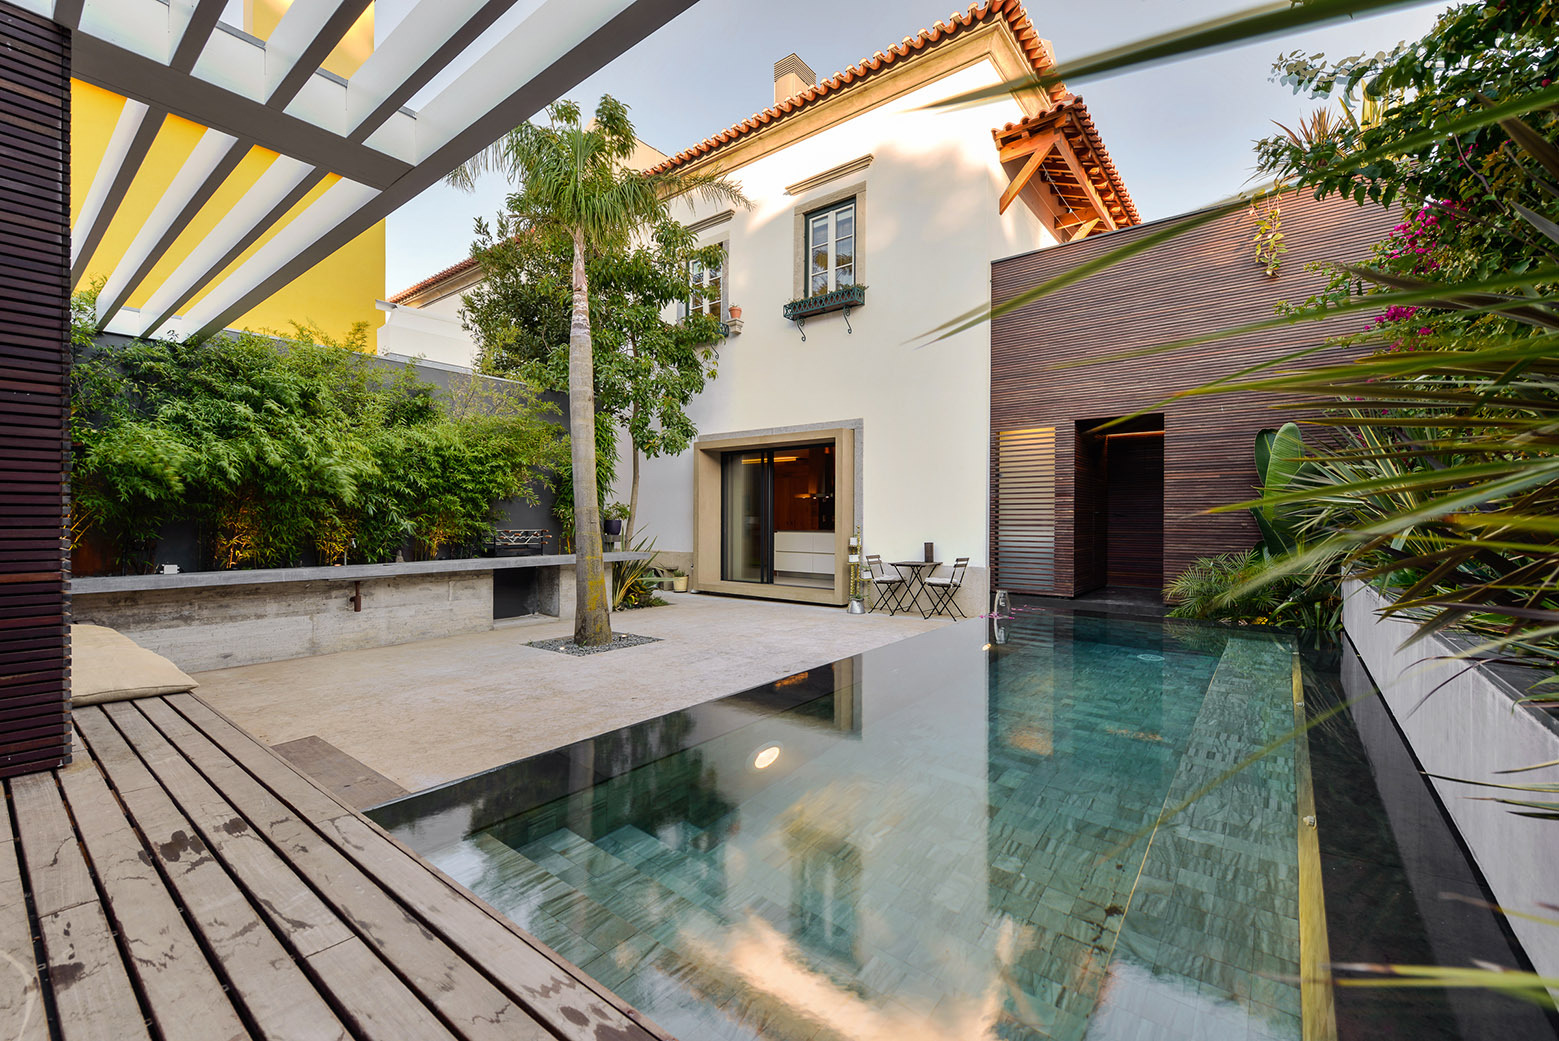 A Dream House Design That Bridges Historic And Contemporary Elements.  Modern Mediterranean Home With Swimming Pool